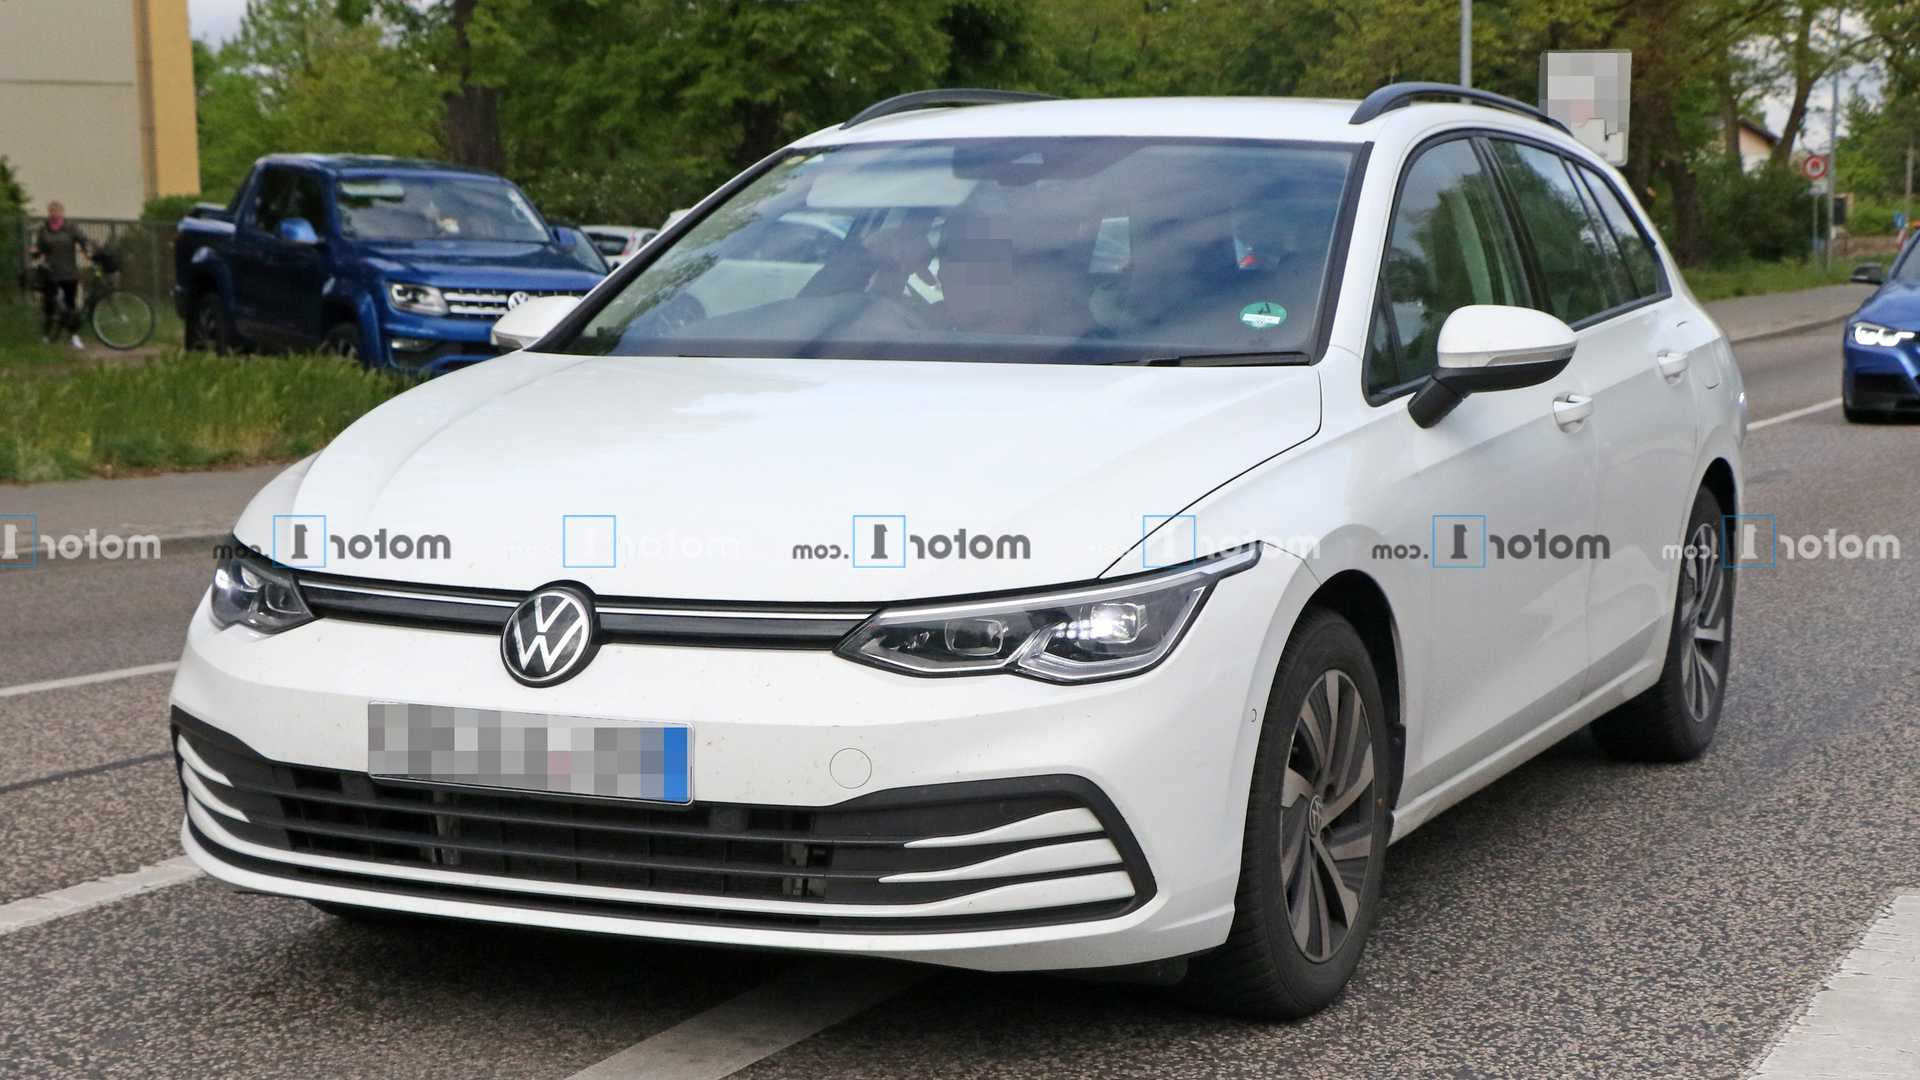 2021 Vw Golf Variant Spied For The First Time